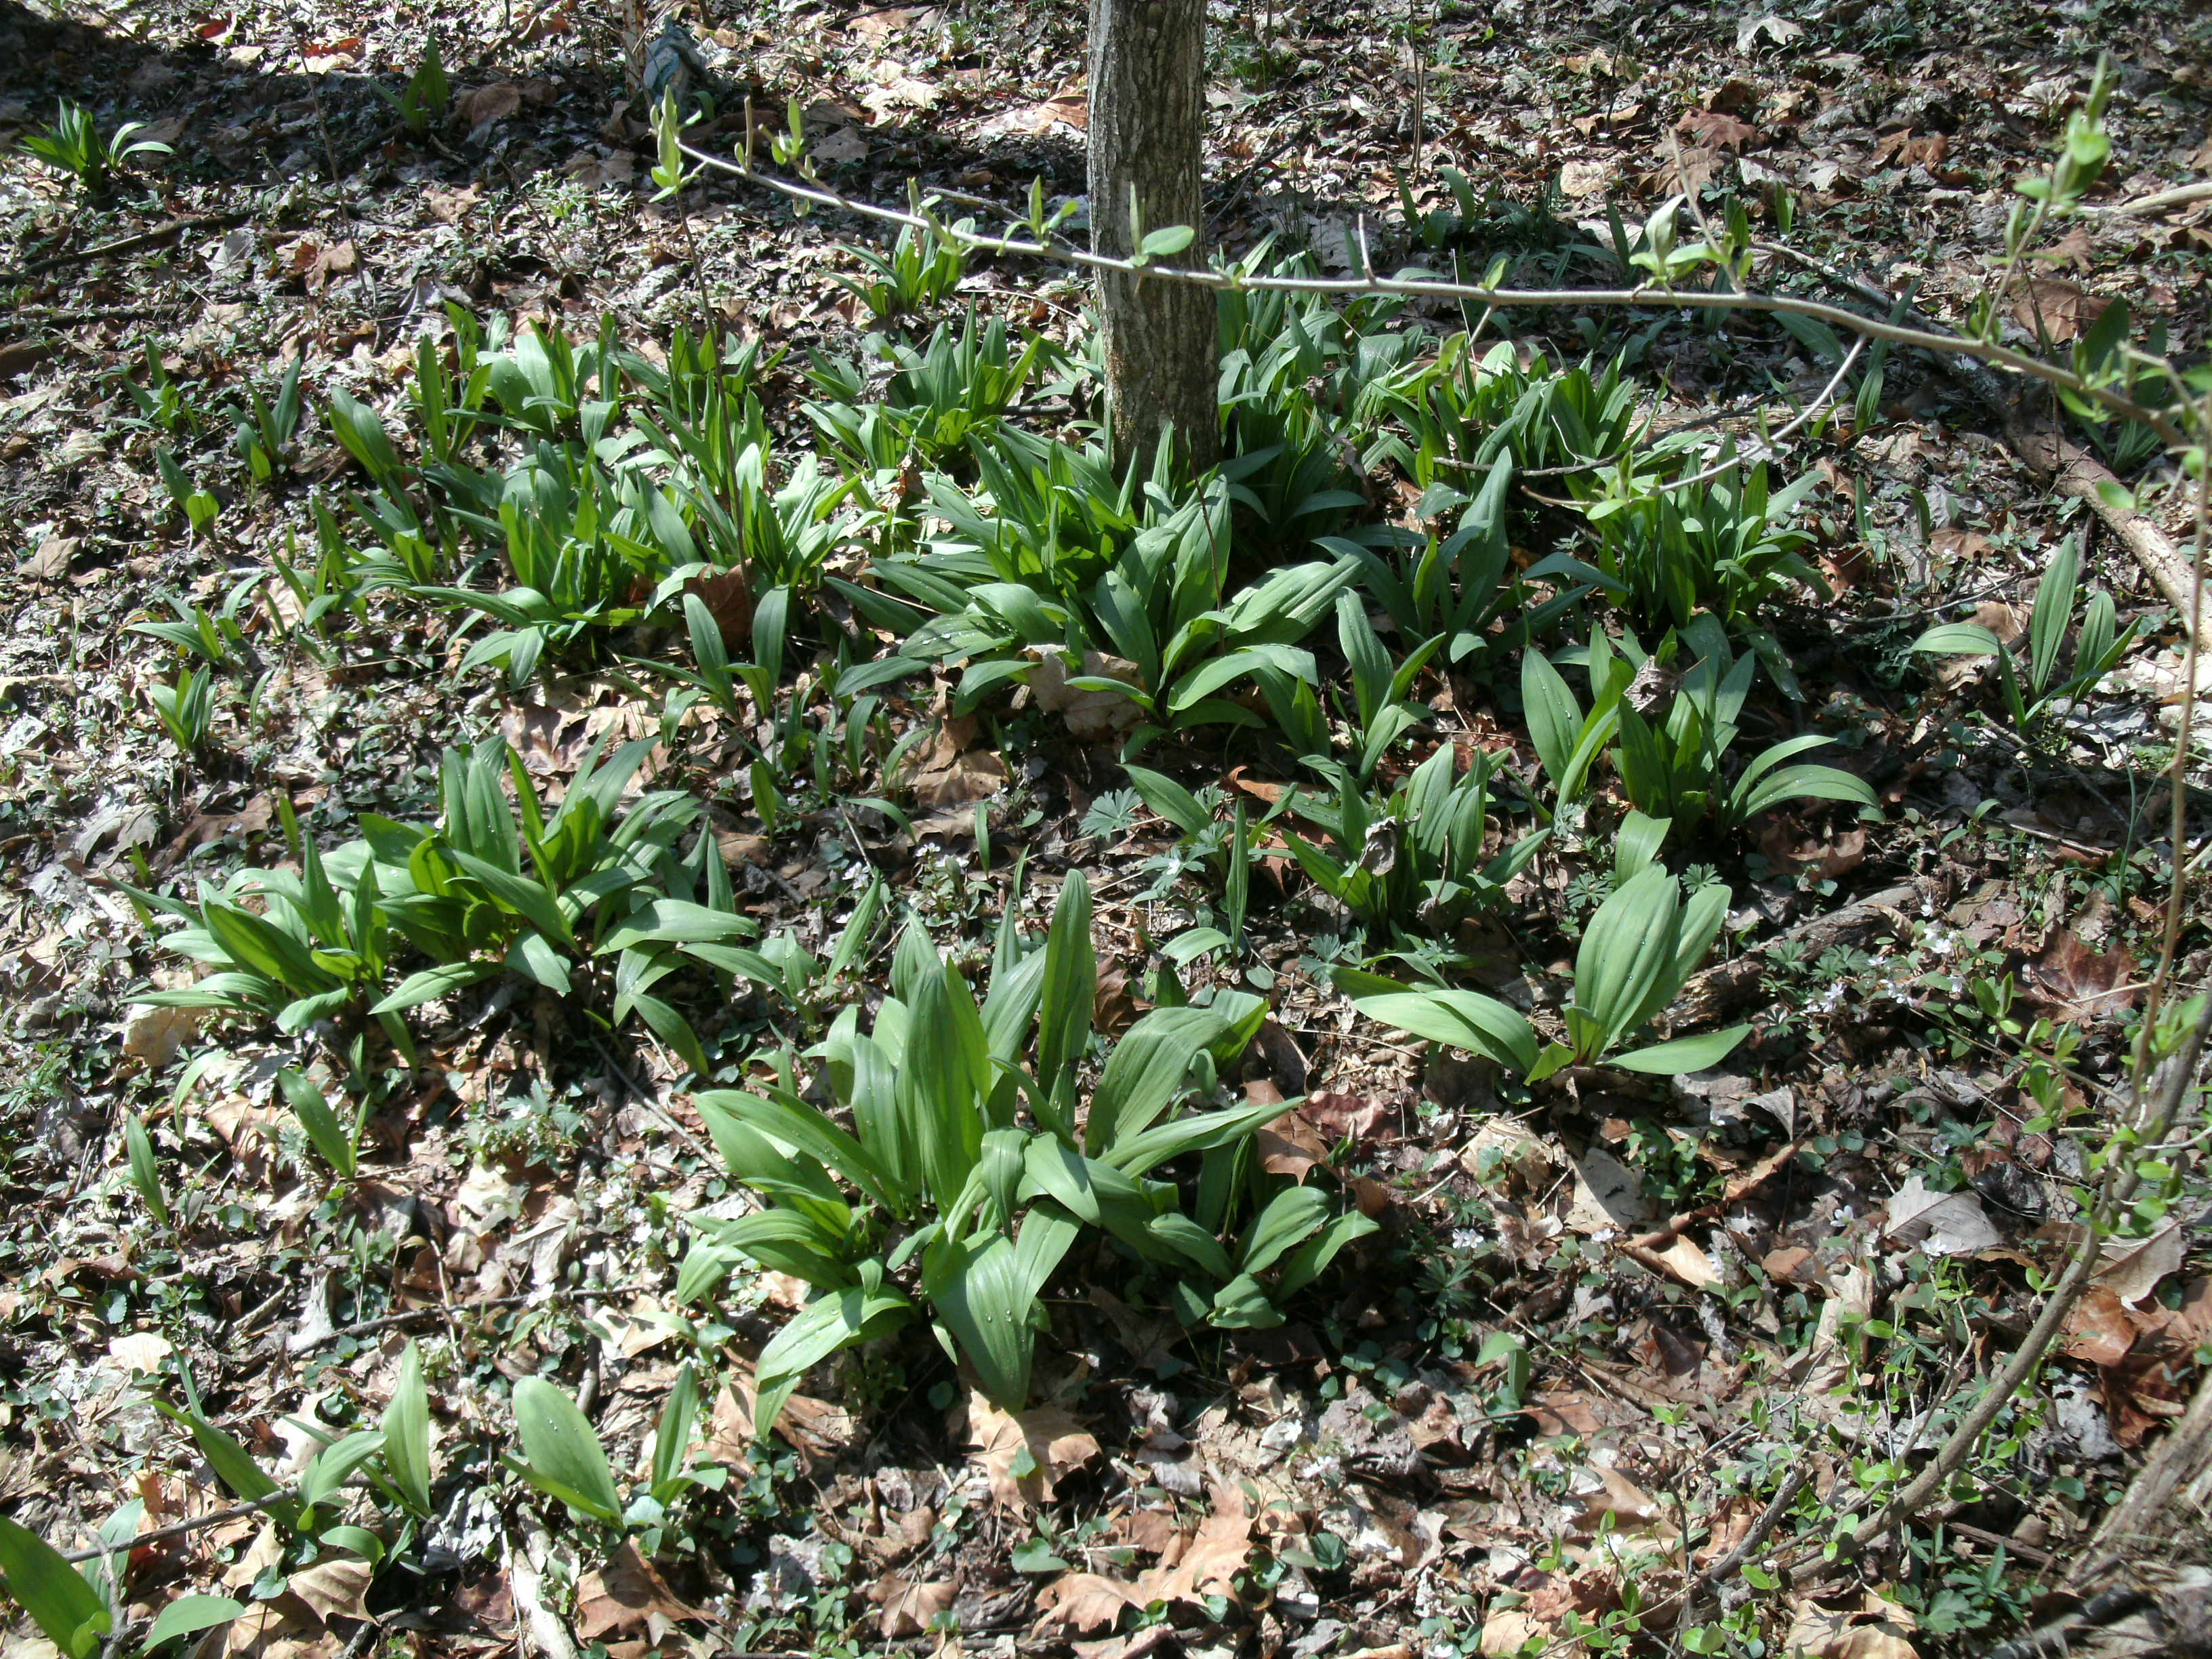 Field of wild growing Ramps